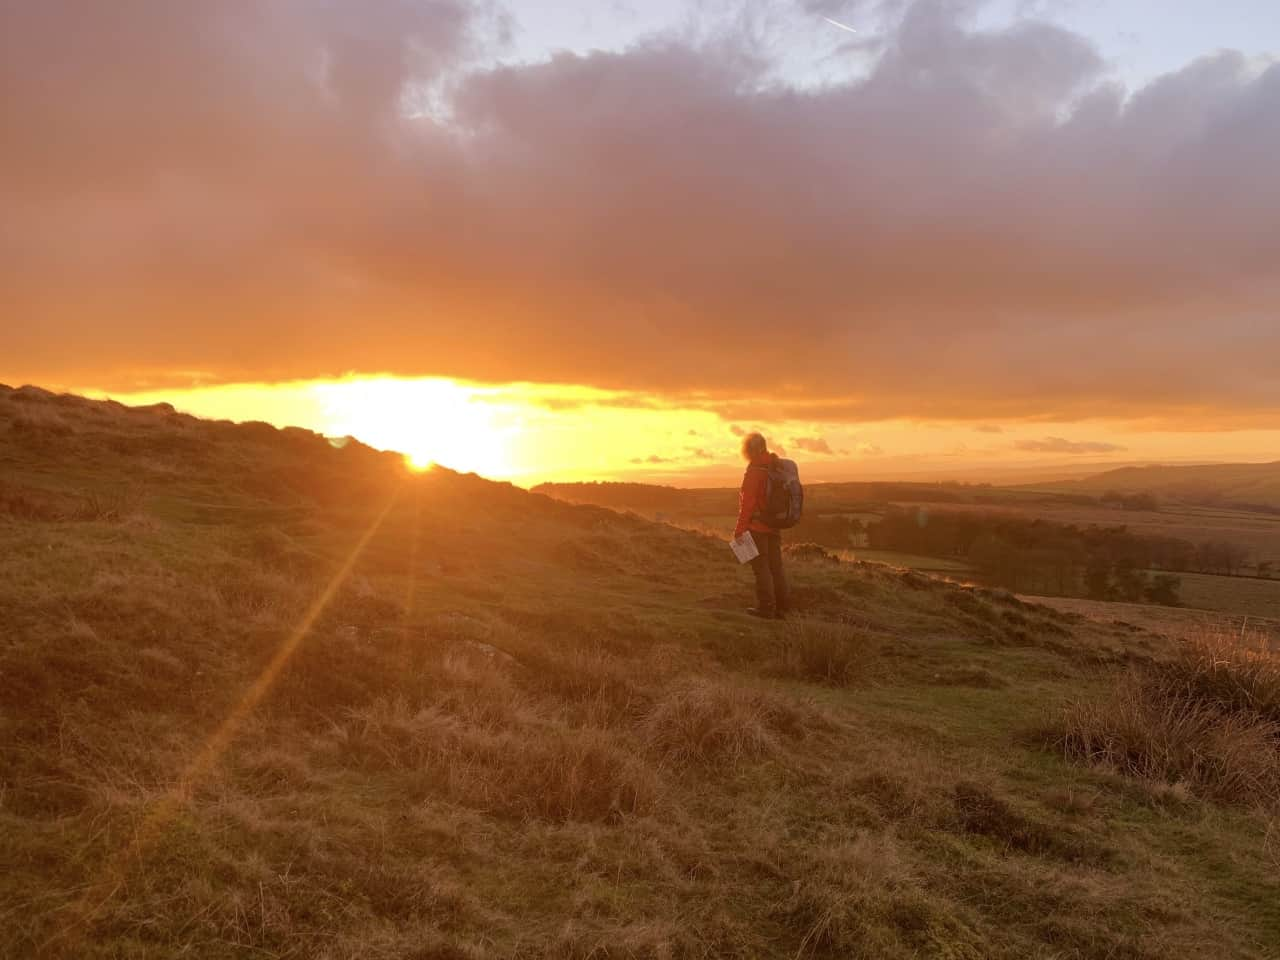 A lady stares into the sunset on a Lowland Leader Course in the Peak District